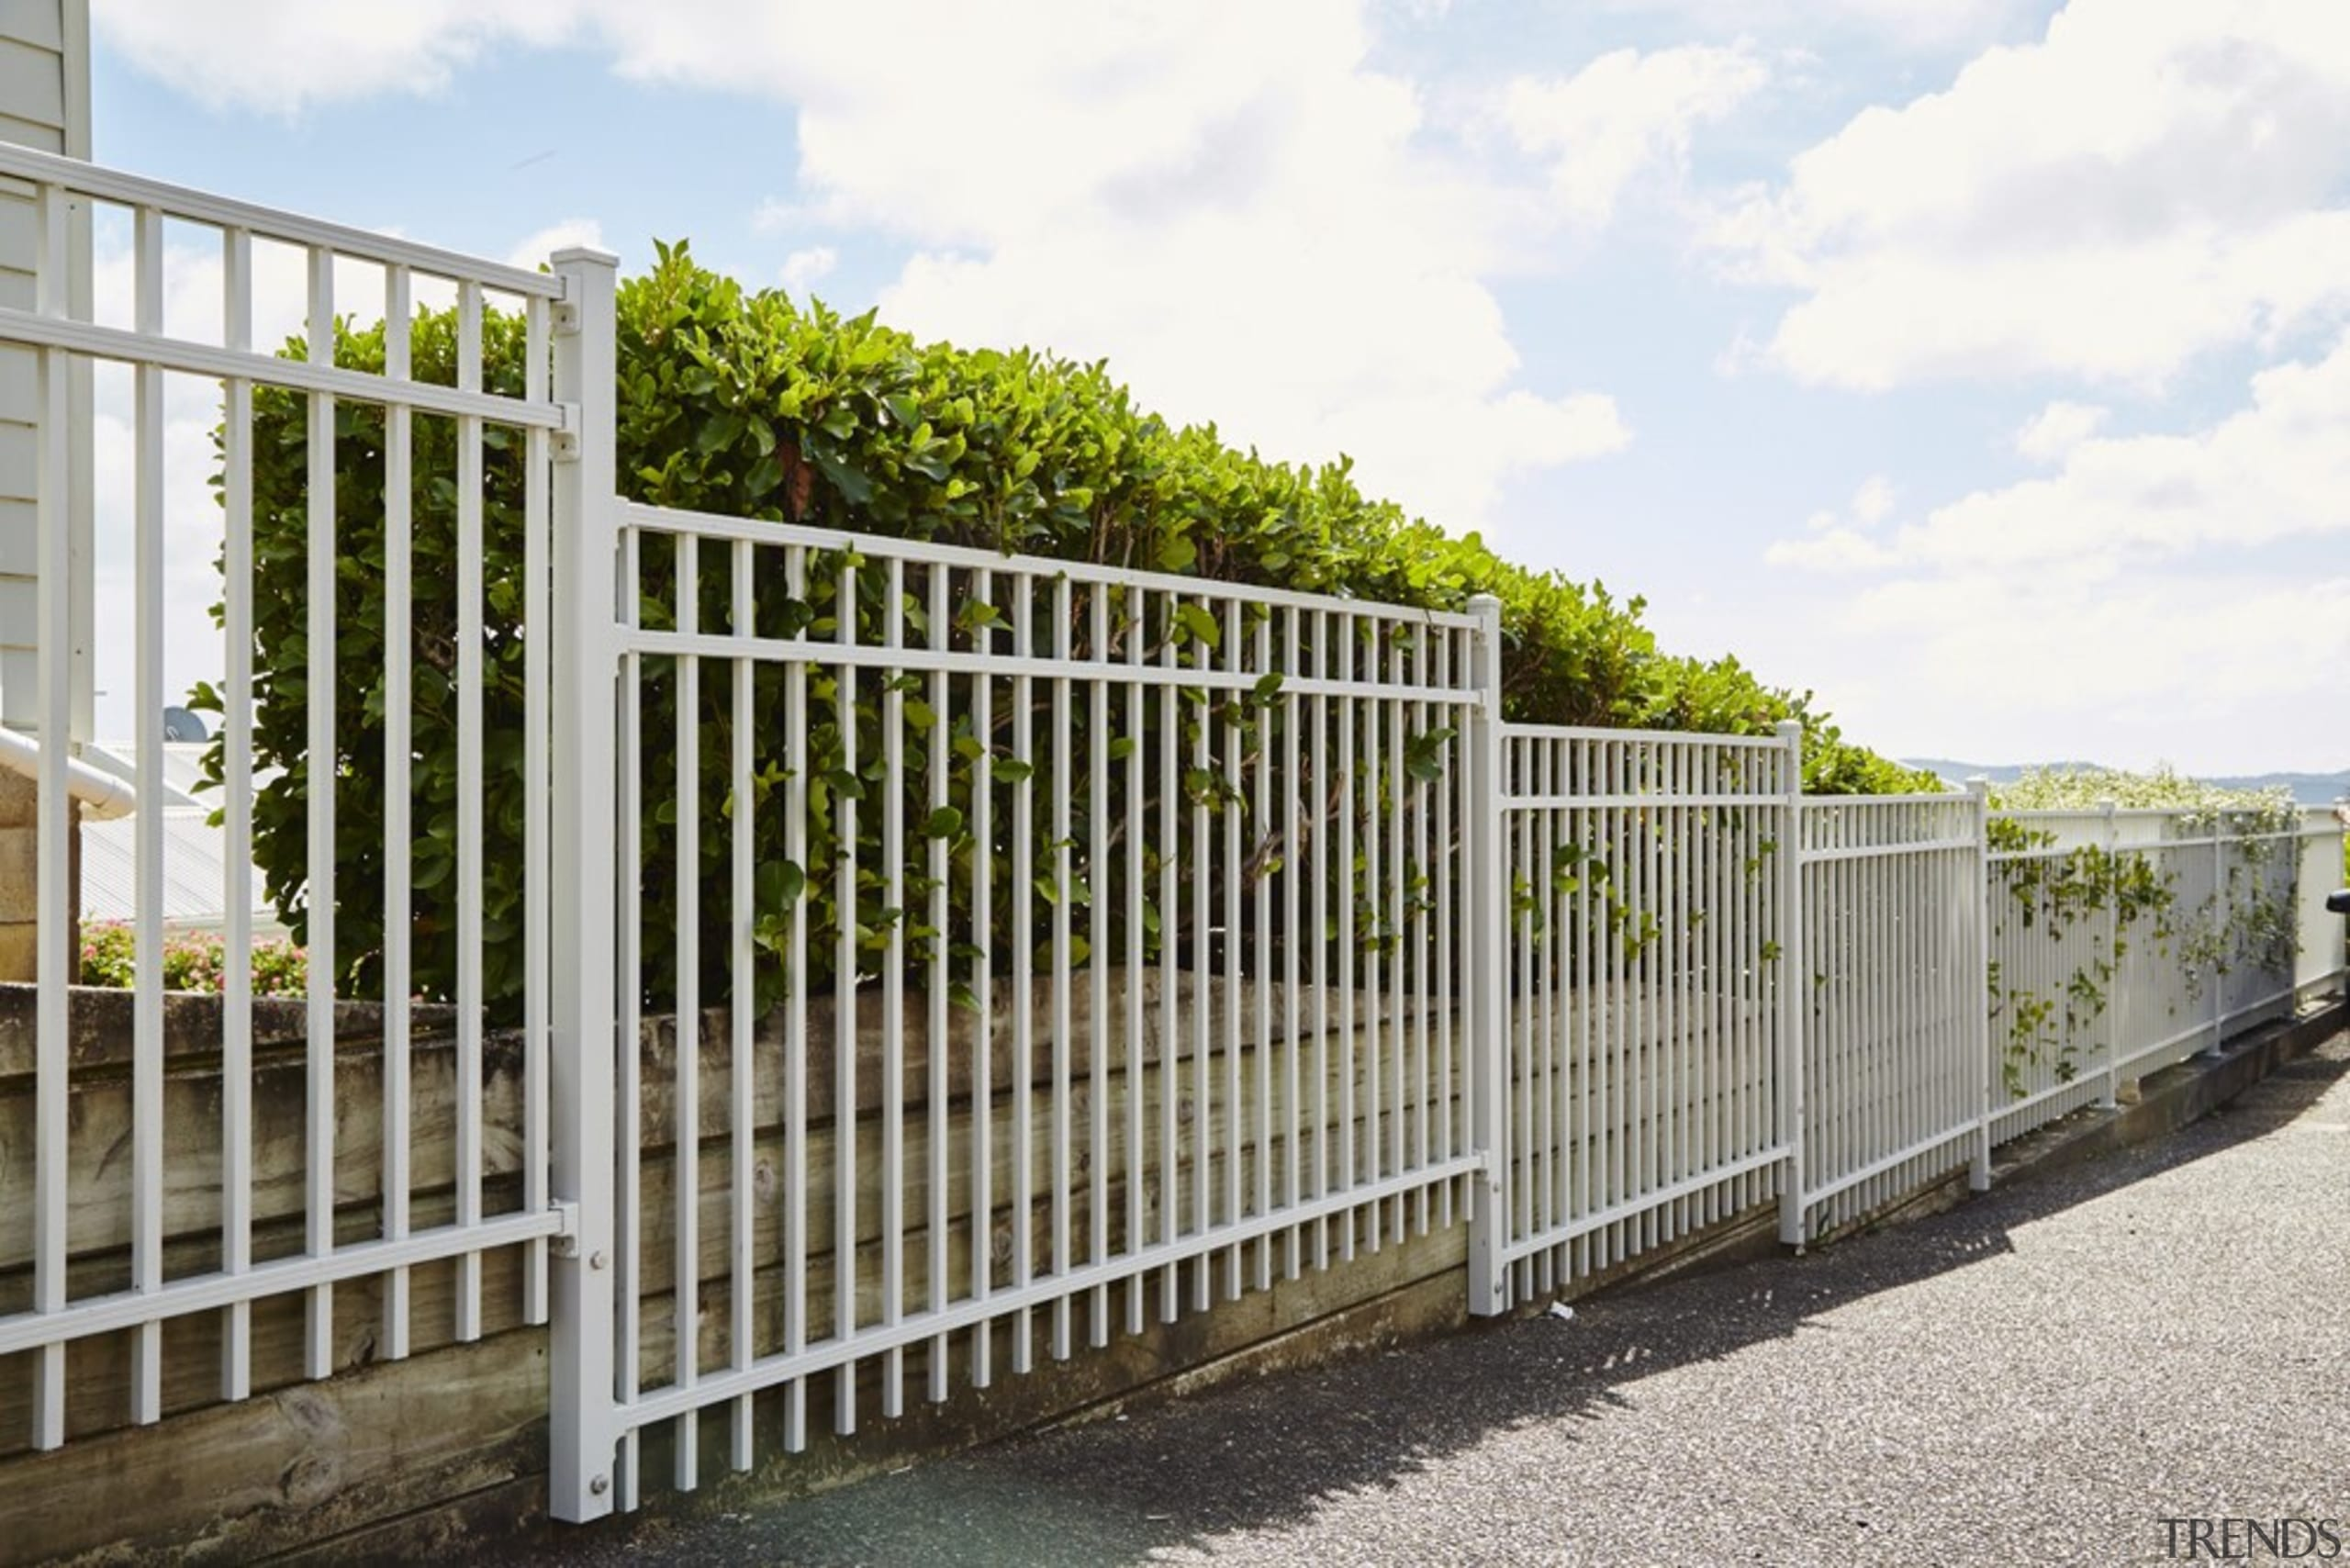 The owner of this home chose HomePlus Contemporary fence, gate, guard rail, handrail, home fencing, iron, outdoor structure, picket fence, residential area, white